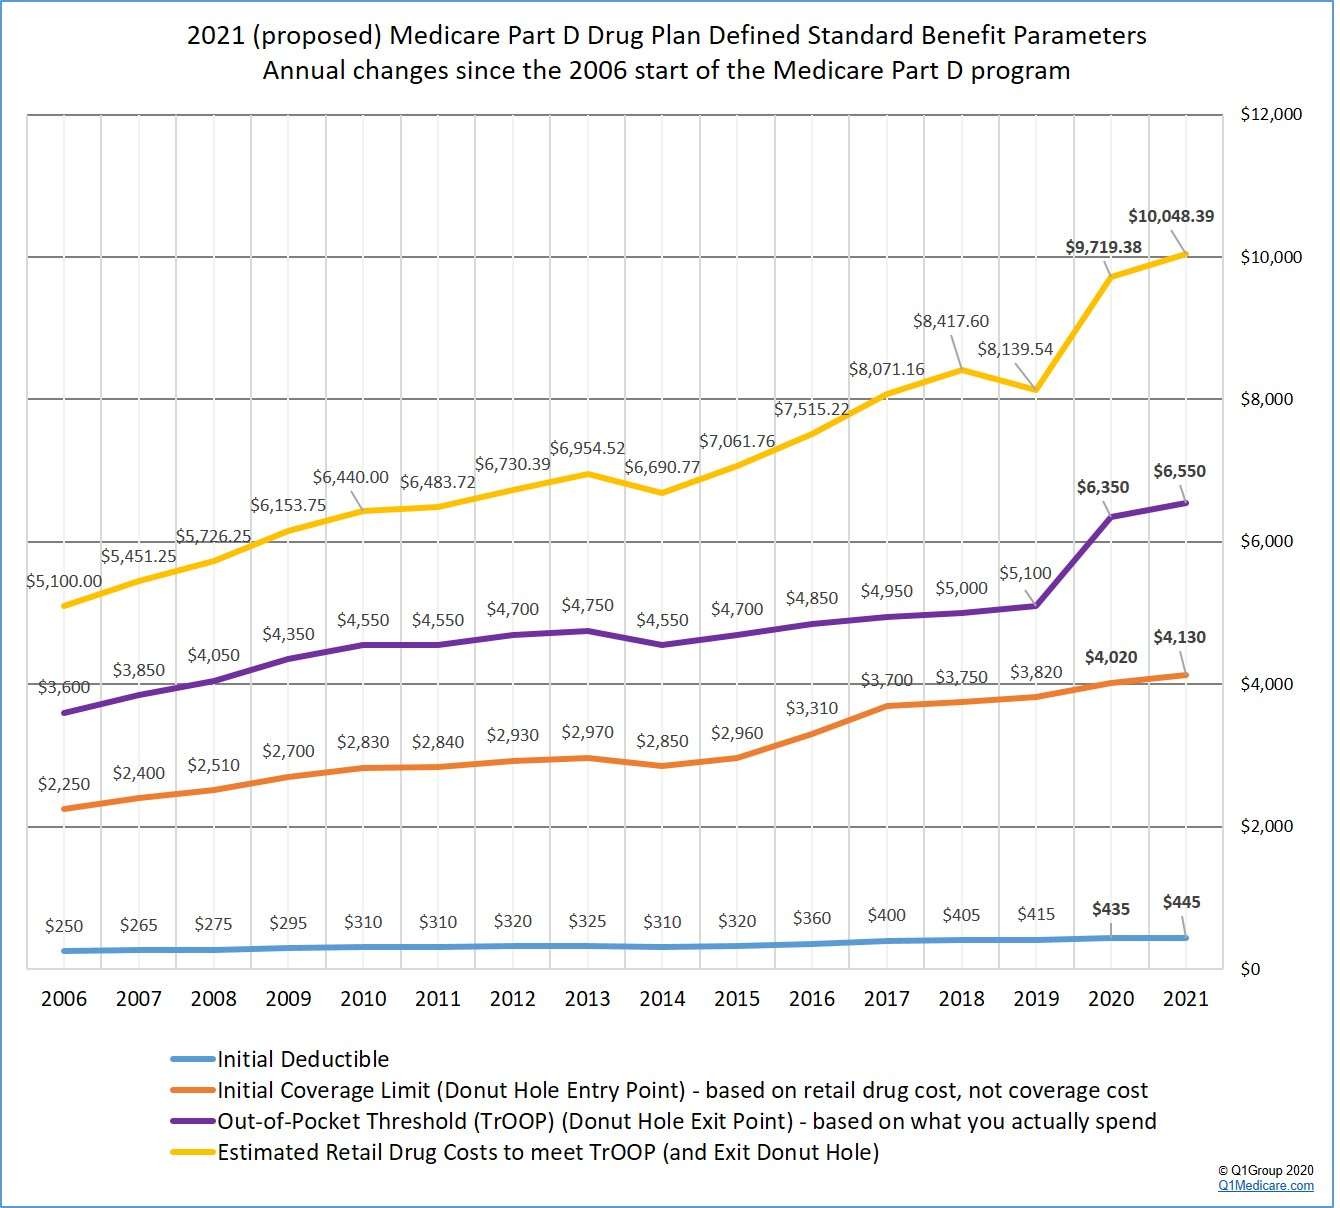 Changes in the standard Medicare Part D plan coverage since 2006